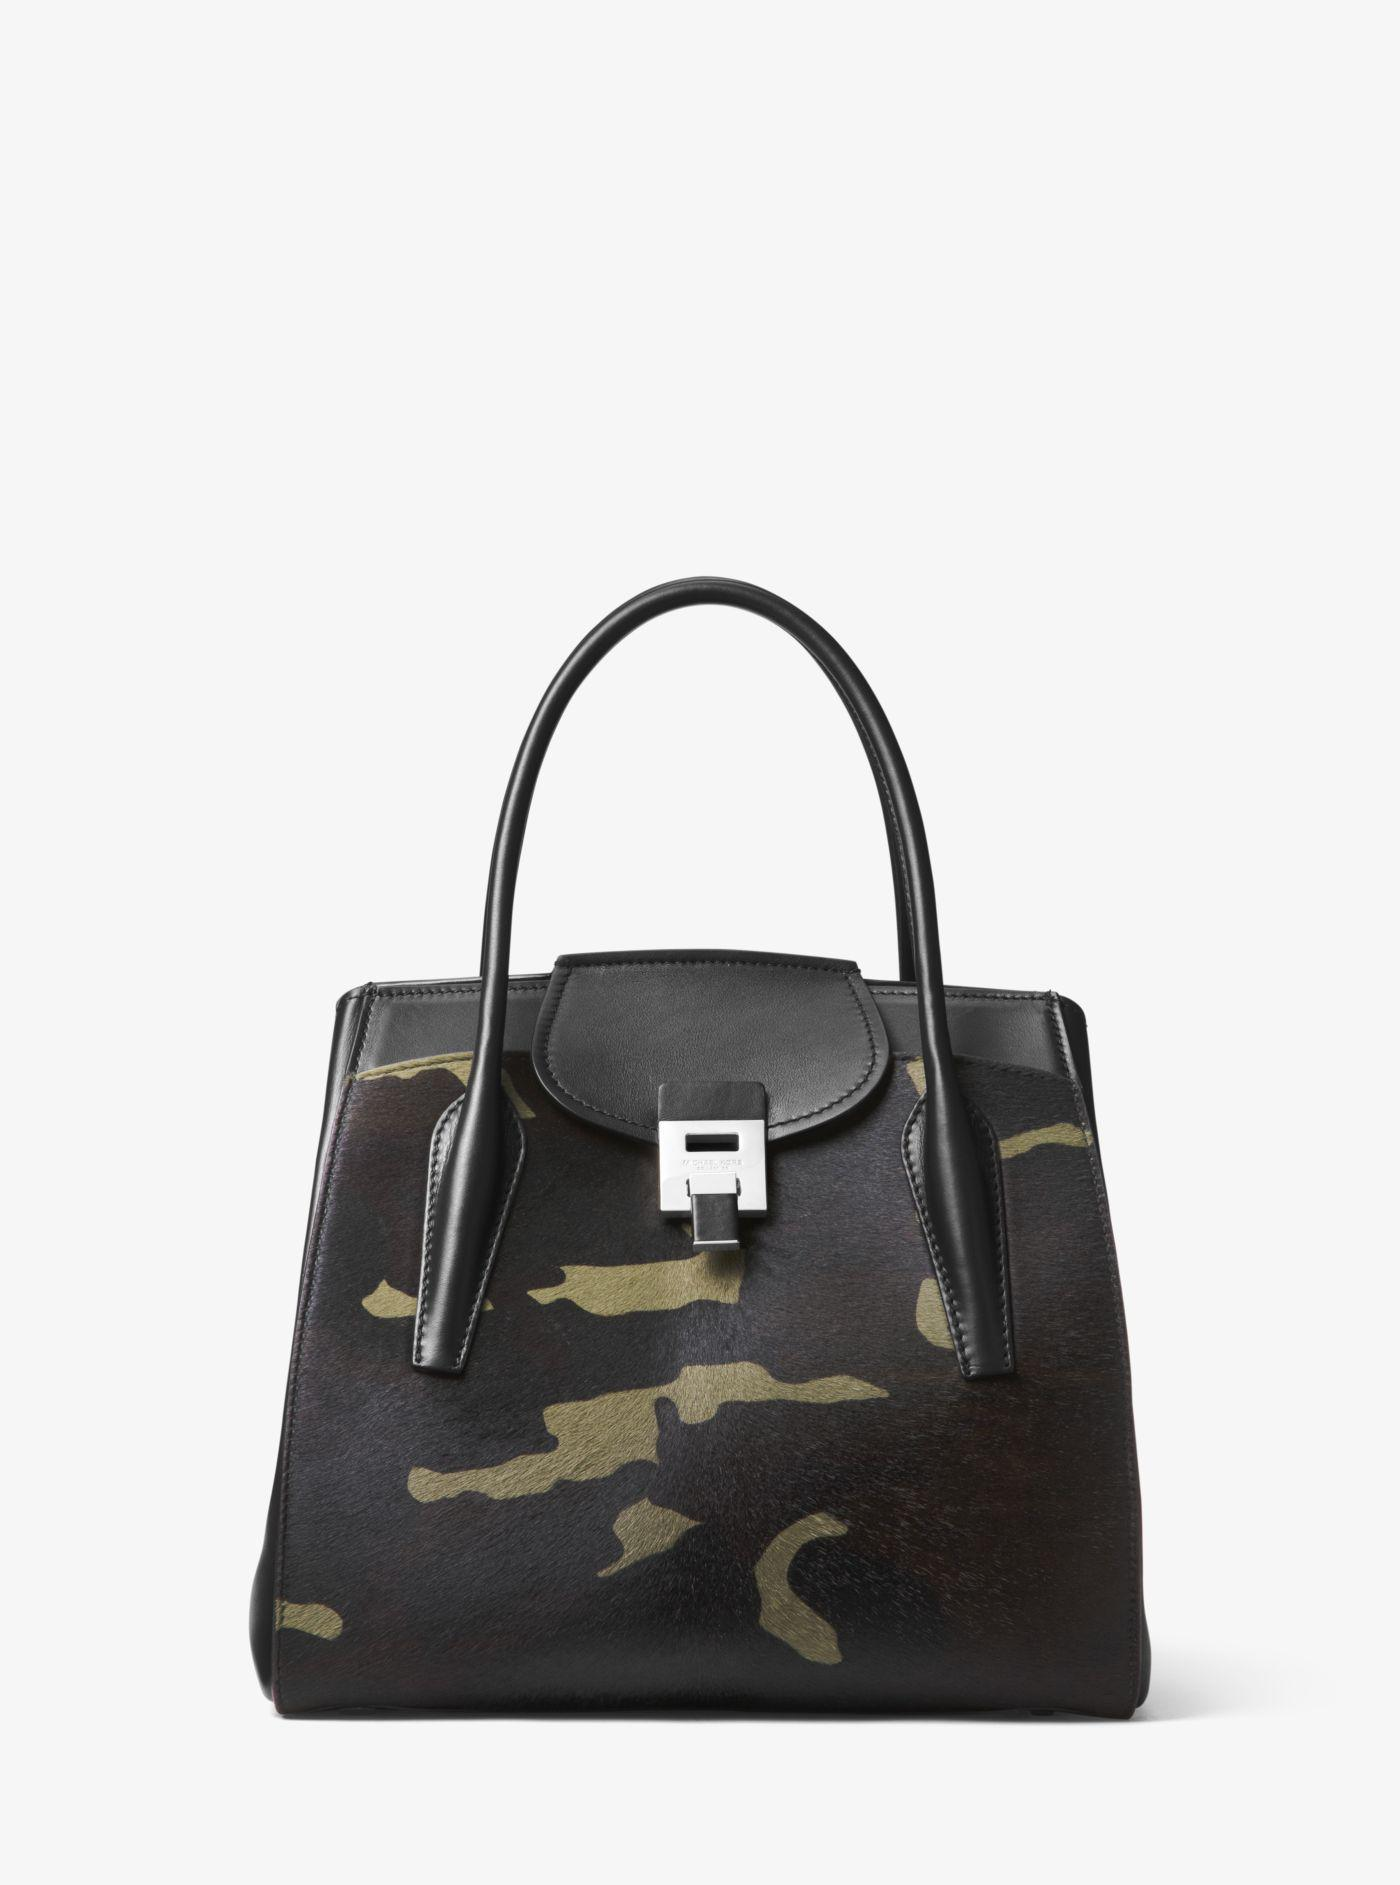 66f2da7ea47e00 ... discount code for lyst michael kors bancroft large camouflage calf hair  satchel in green db0a5 d7bcc